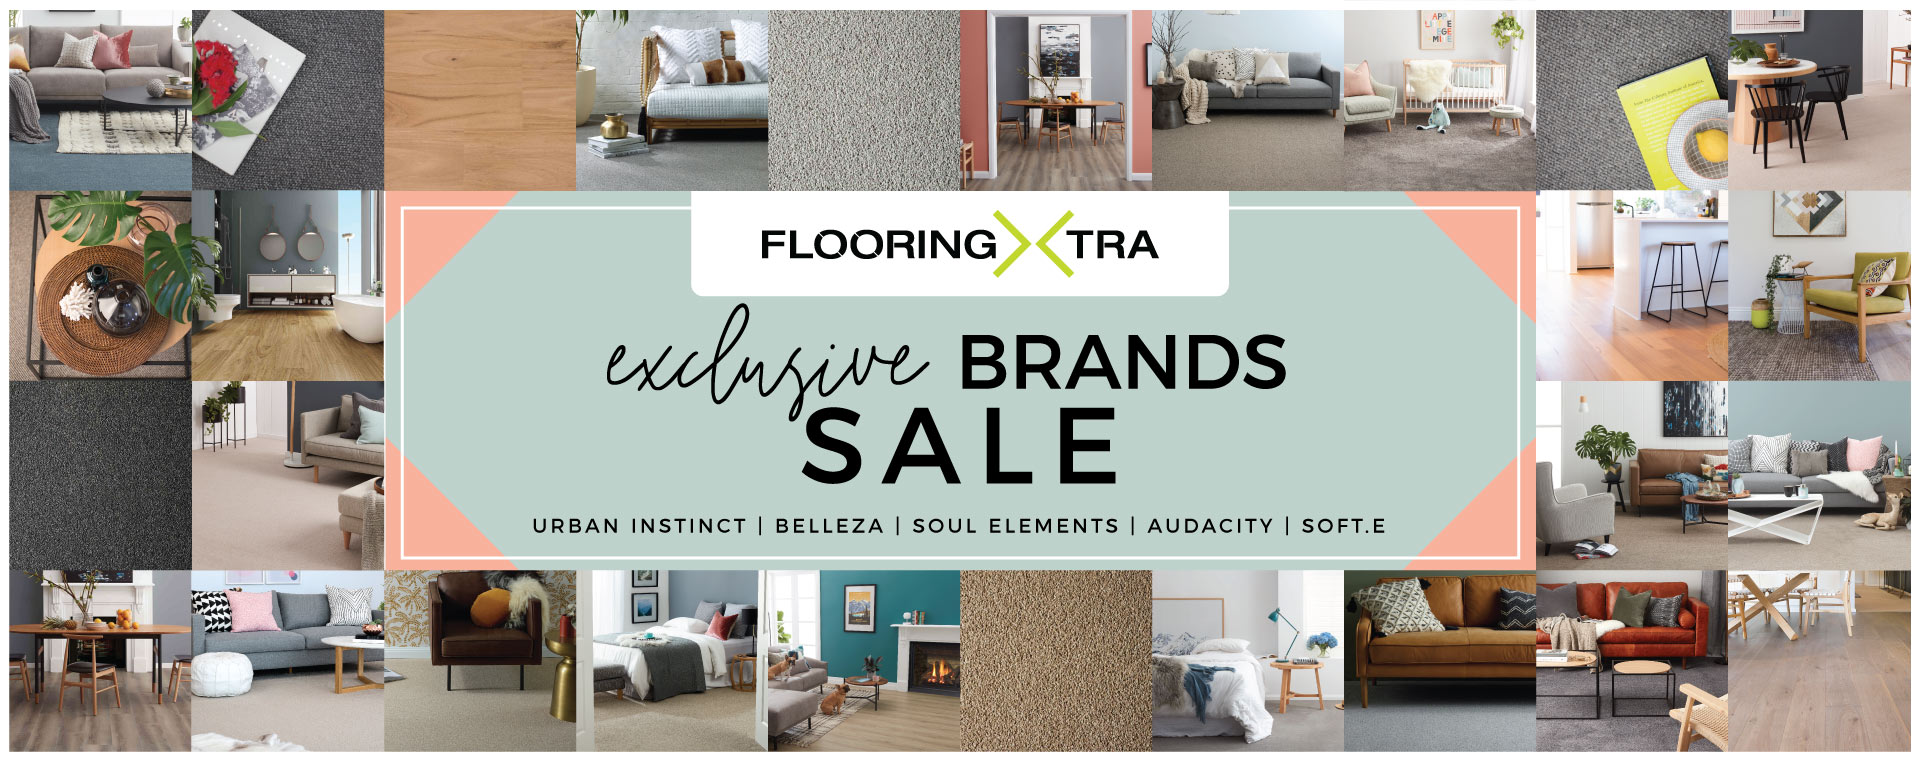 Flooring Xtra Exclusive Brands Sale Banner